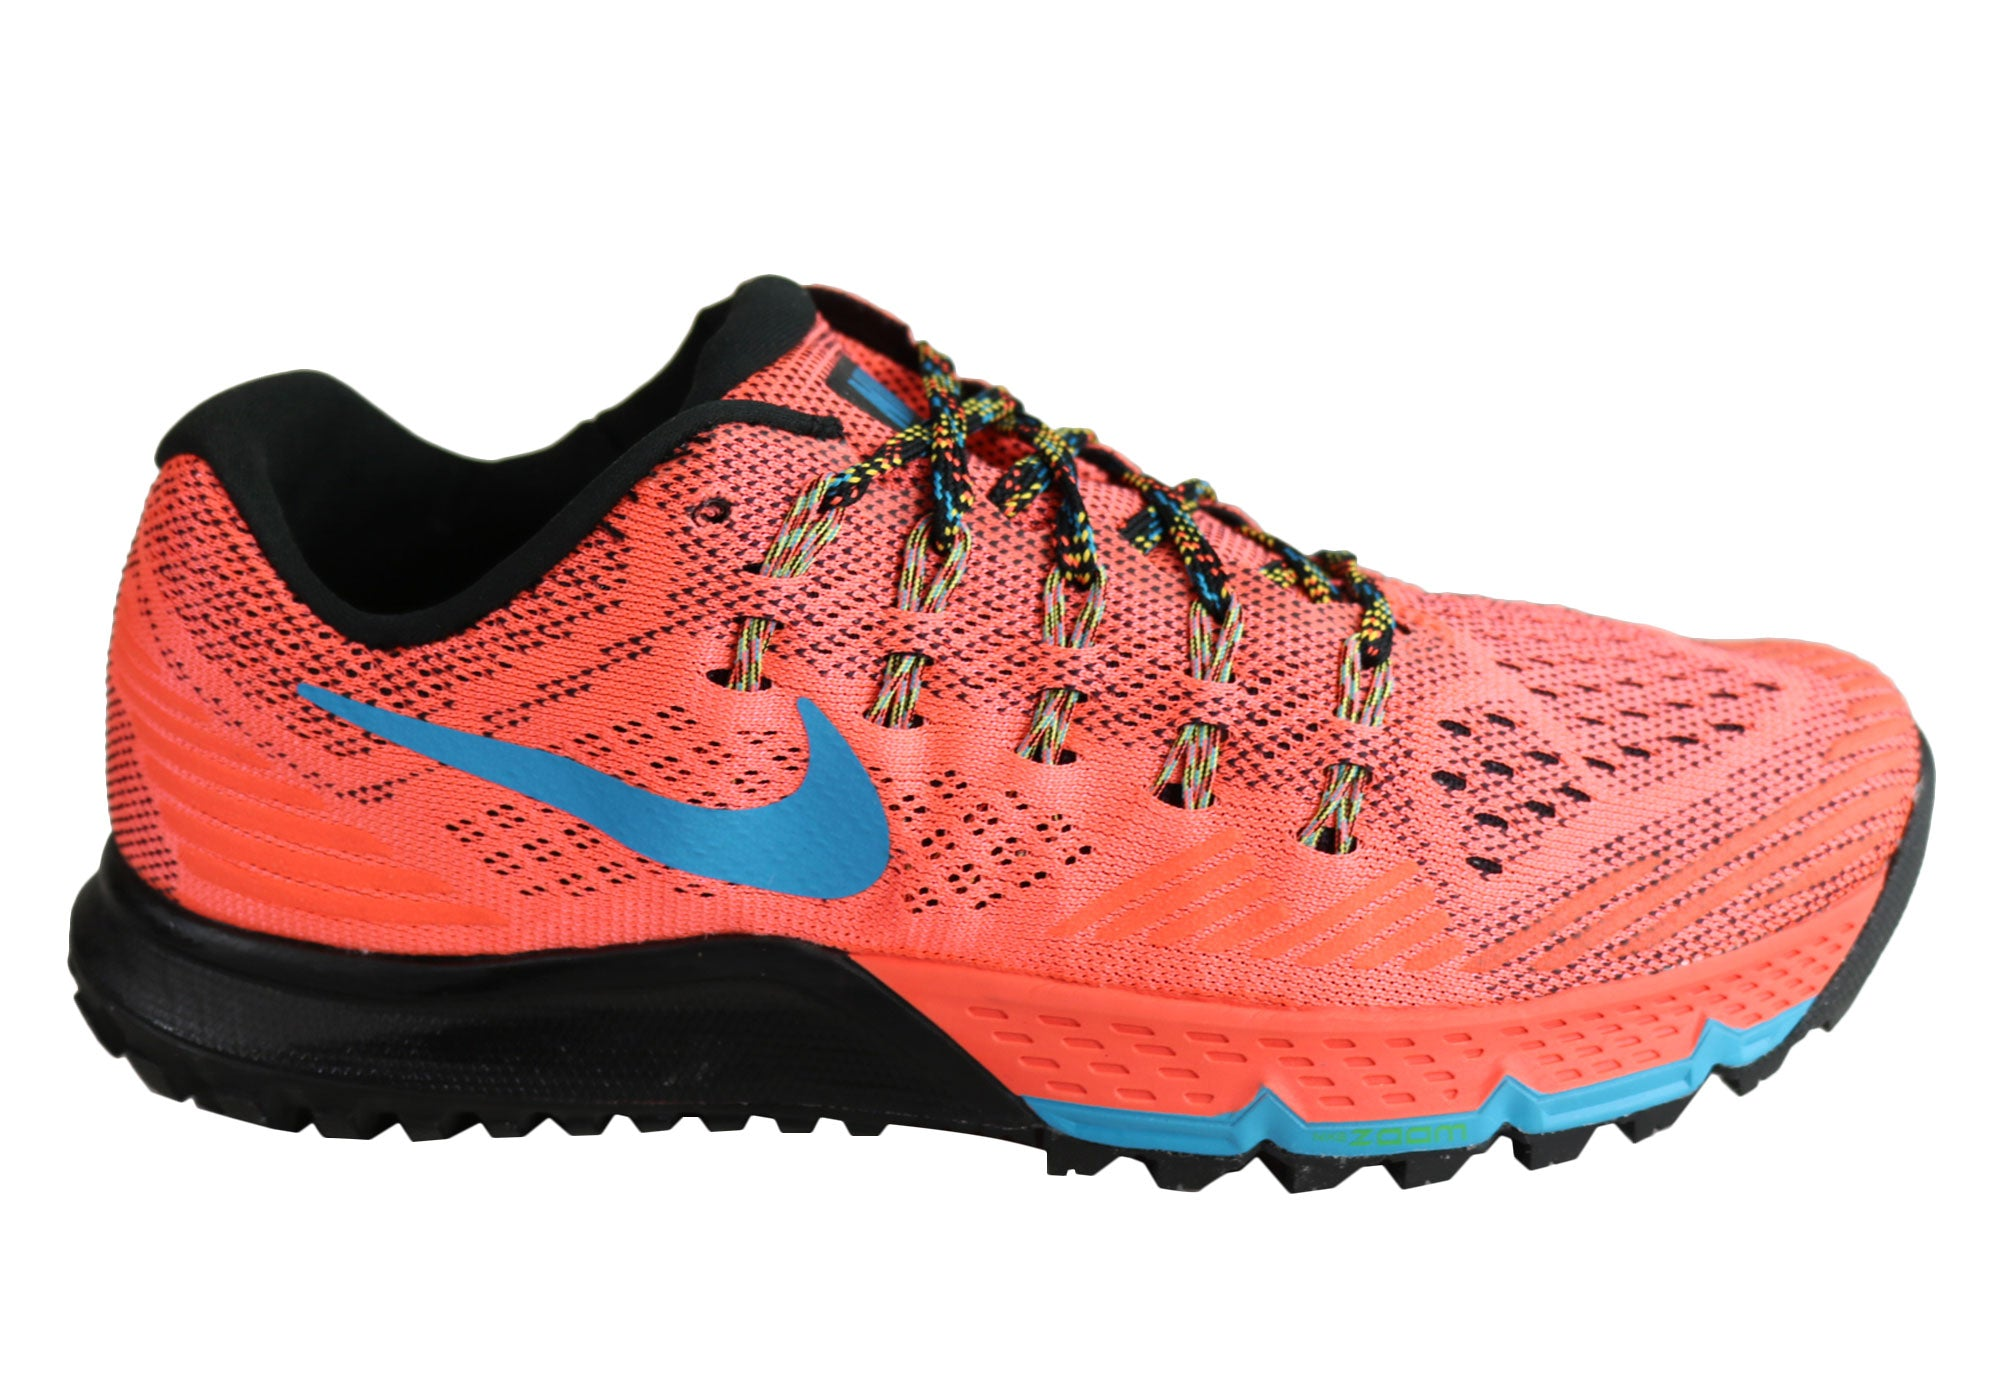 nike air zoom terra kiger 3 women's trail running shoes Pink